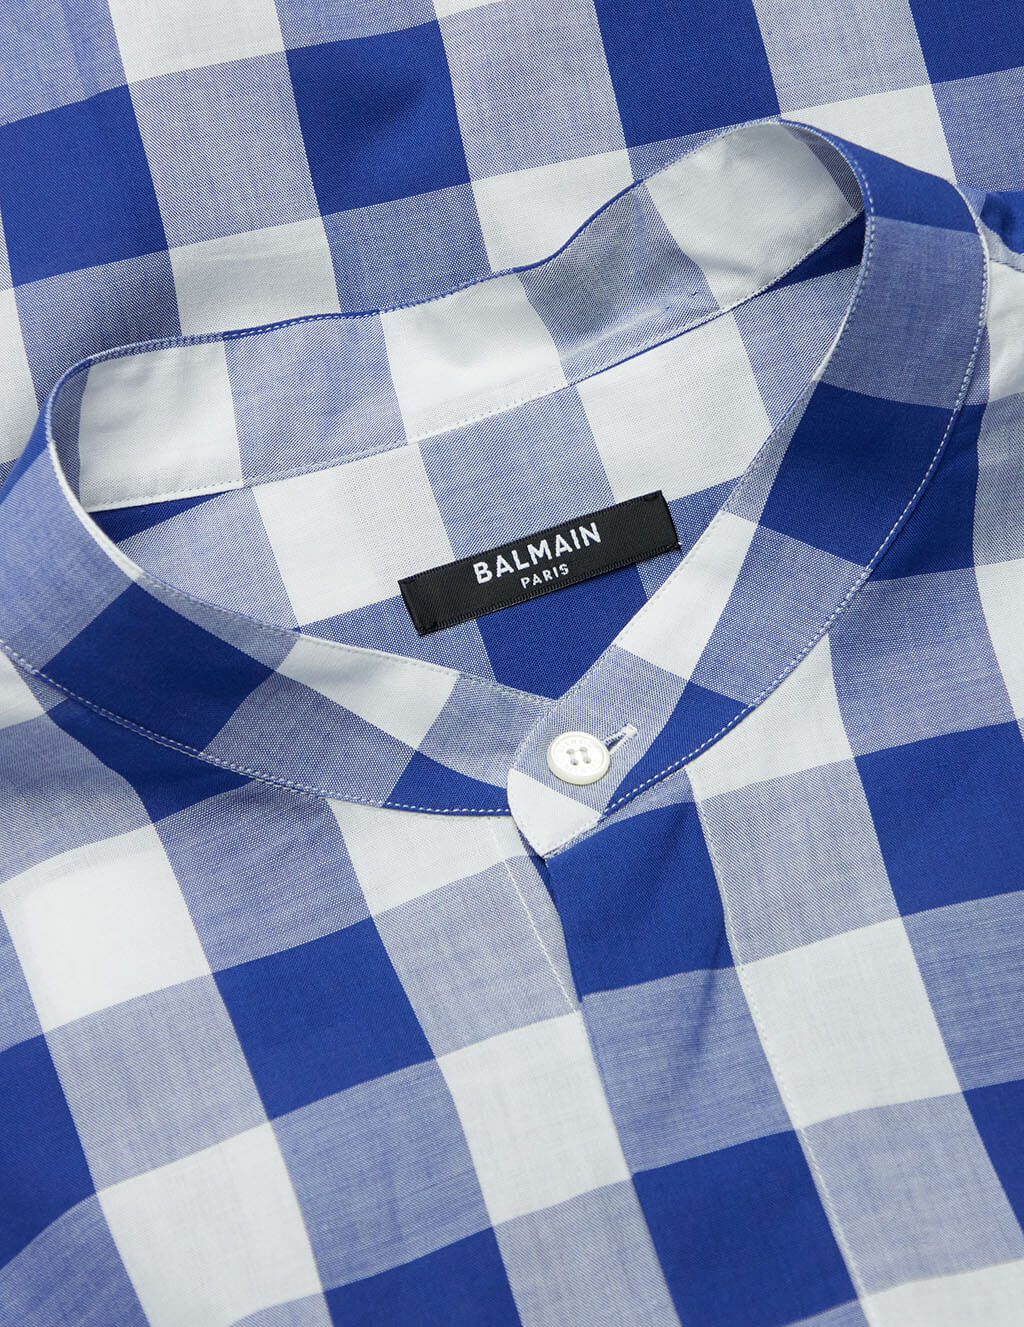 Balmain Blue/White Oversized Gingham Cotton Shirt VH1HU000C201SAB